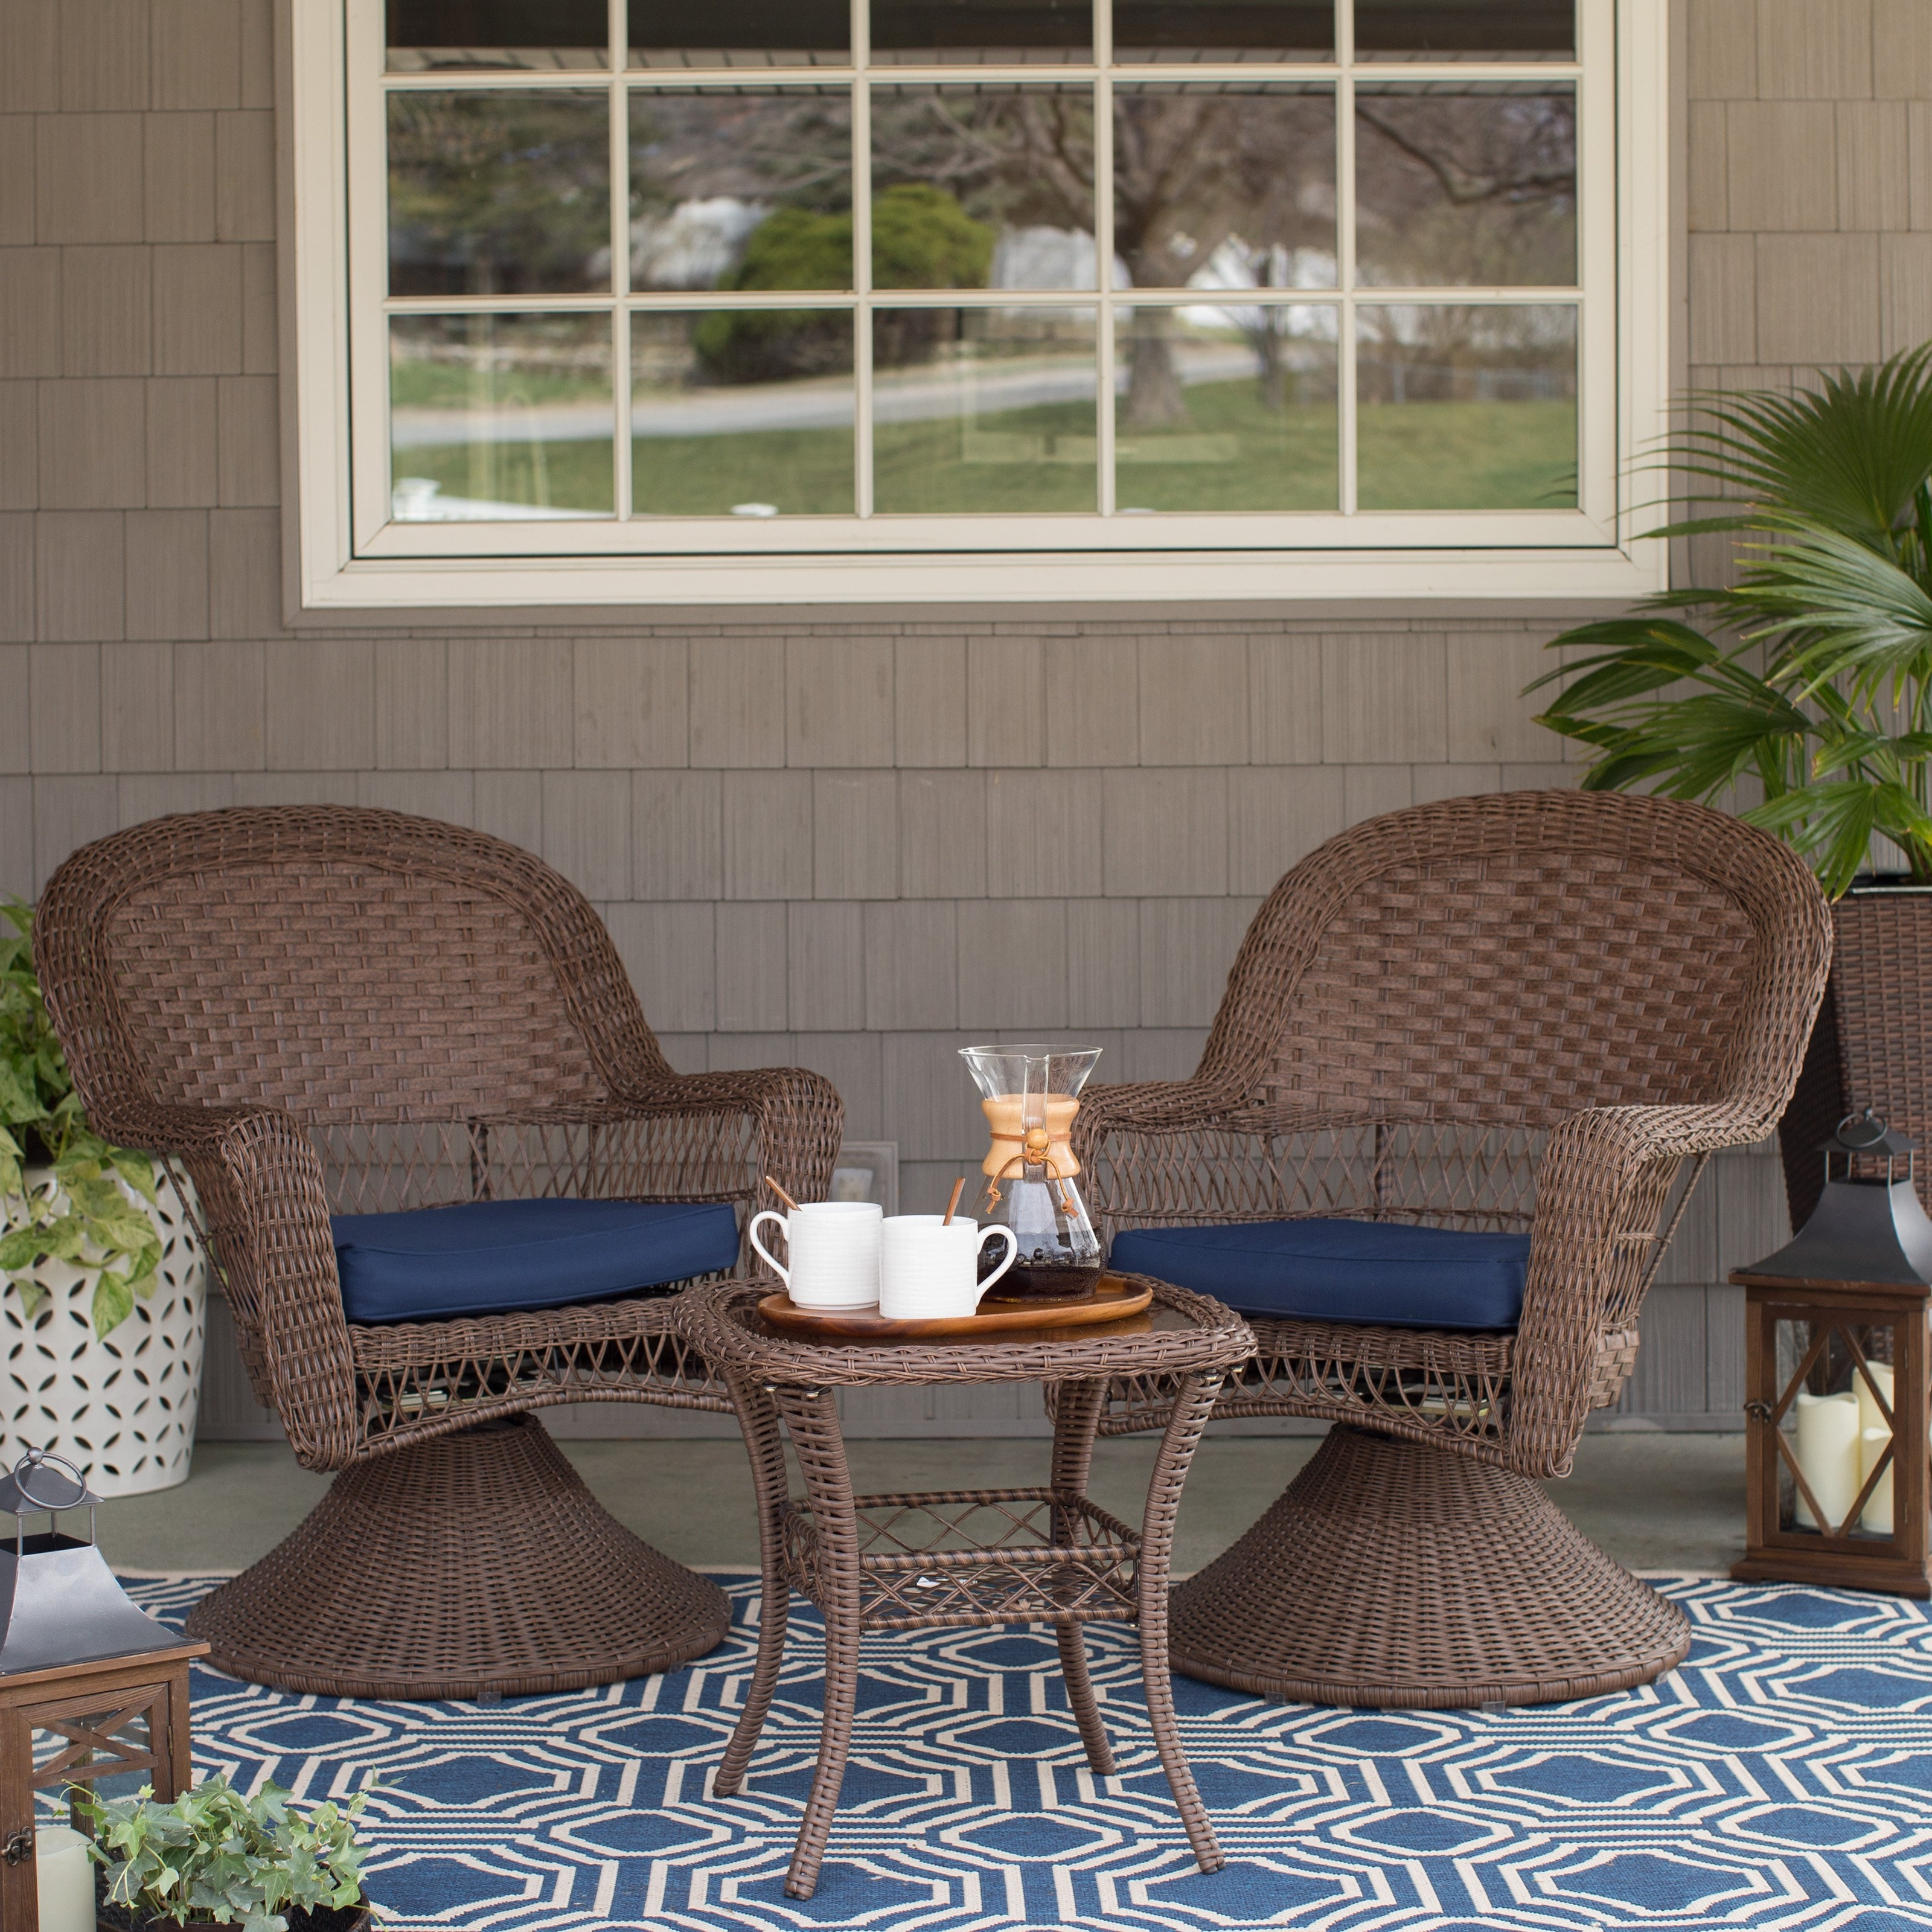 Patio Conversation Sets With Swivel Chairs Intended For Preferred Coral Coast 3 Piece Wicker Swivel Chat Set – Walmart (View 13 of 20)